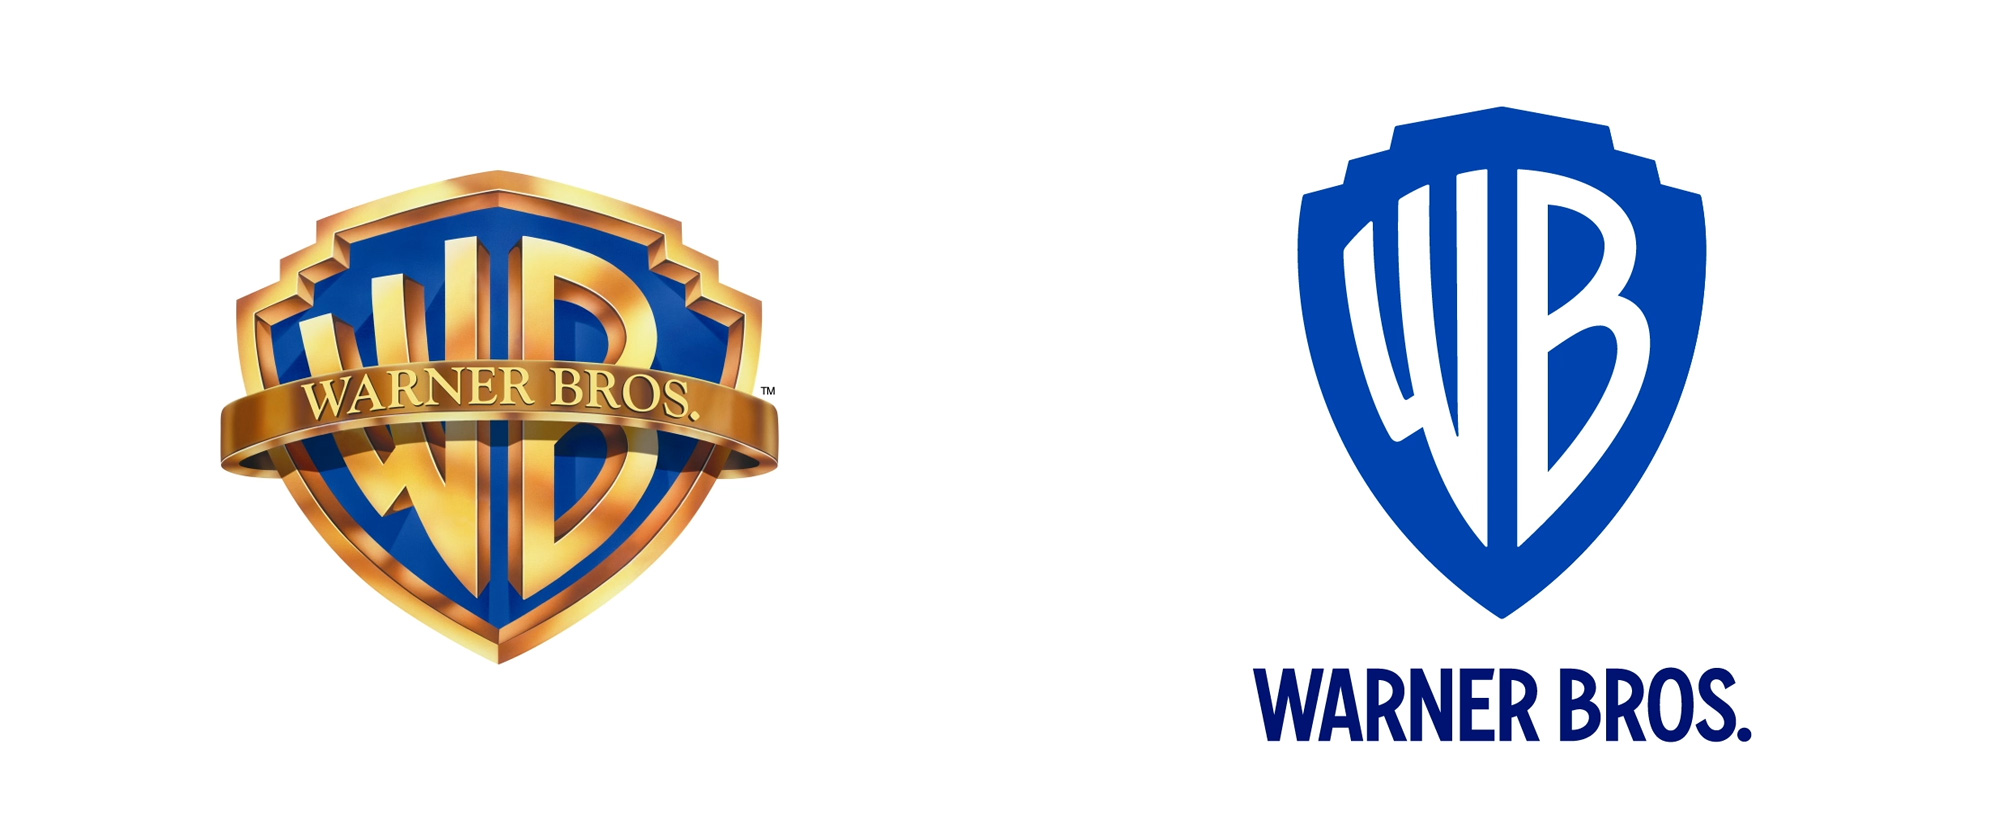 Brand New: New Logo and Identity for Warner Bros. by Pentagram